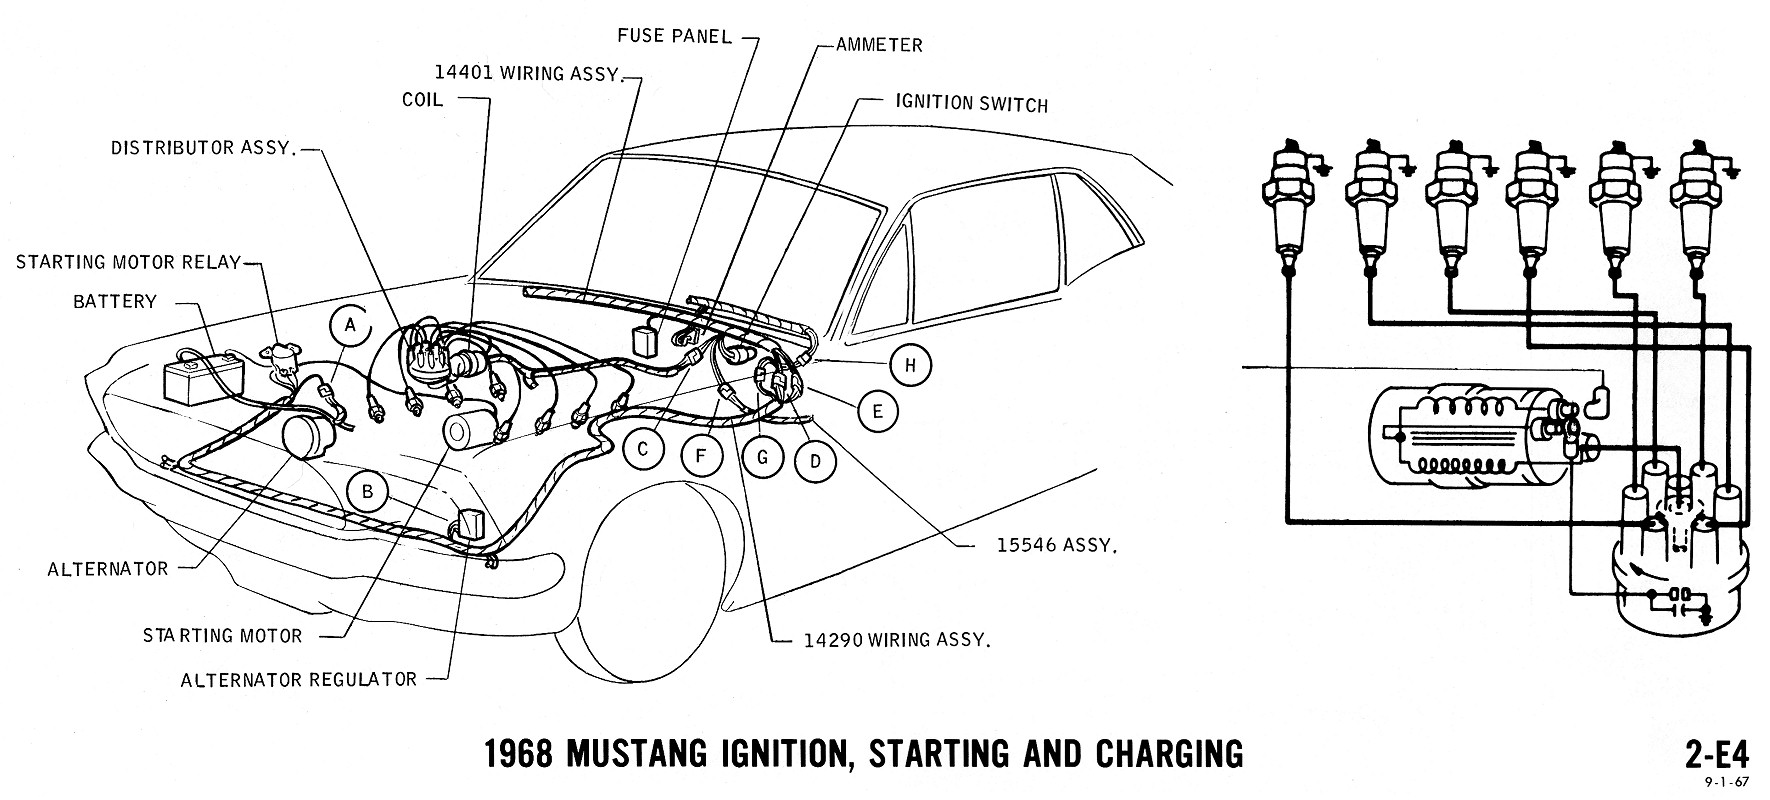 1968 mustang wiring diagrams and vacuum schematics average joe rh averagejoerestoration com 1969 mustang wiring diagram online 1969 mustang color wiring diagram